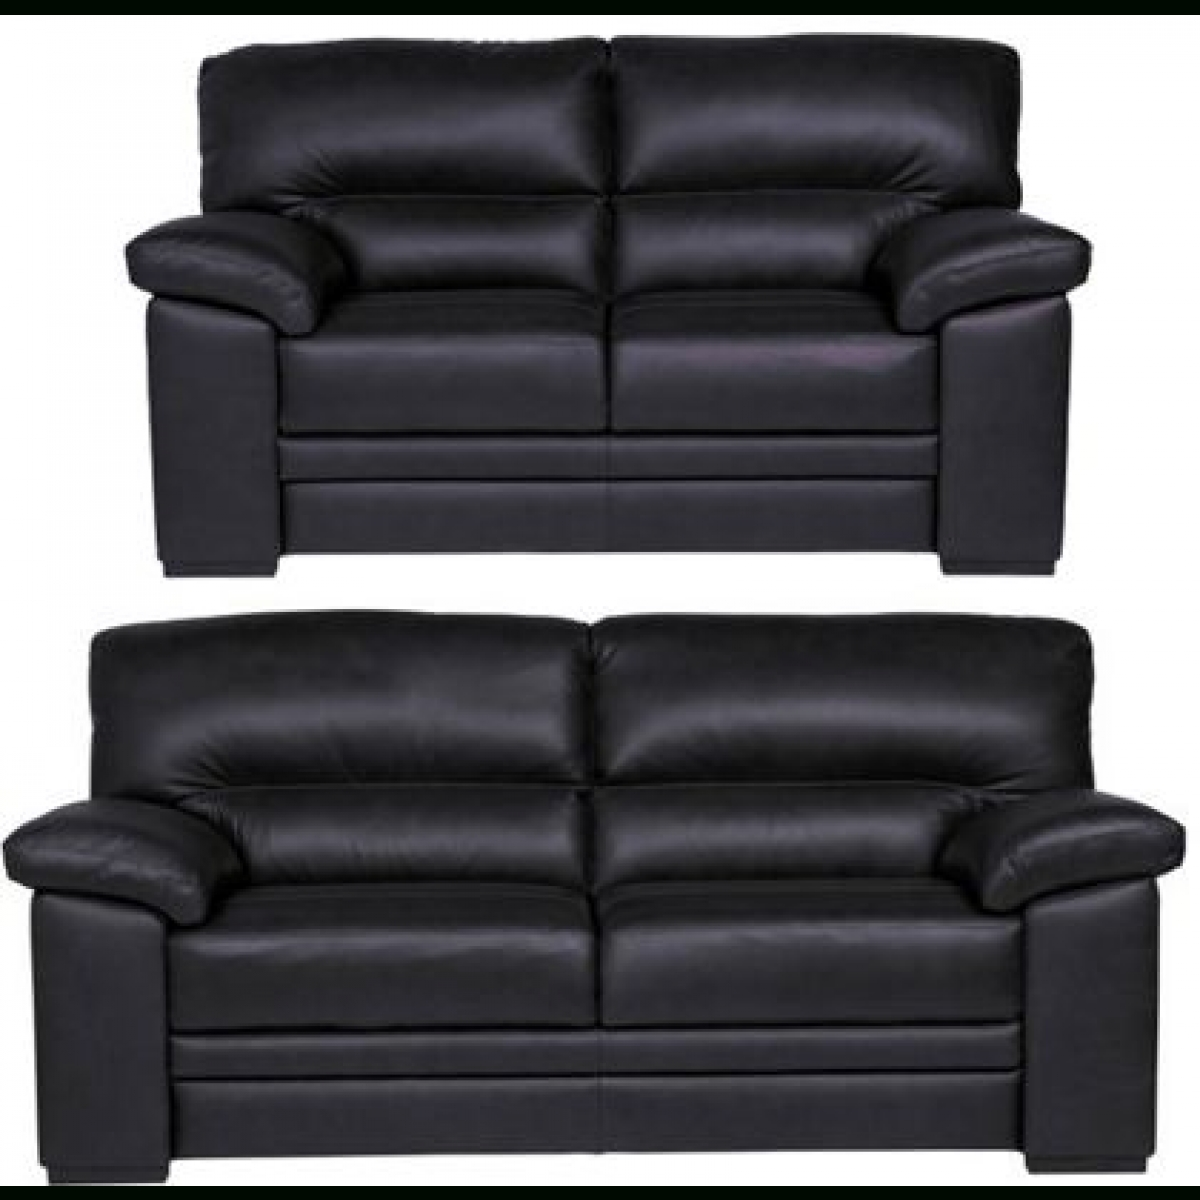 Piacenza 3 Seater And 2 Seater Sofa – Black – Furnico Village Pertaining To Black 2 Seater Sofas (View 18 of 20)